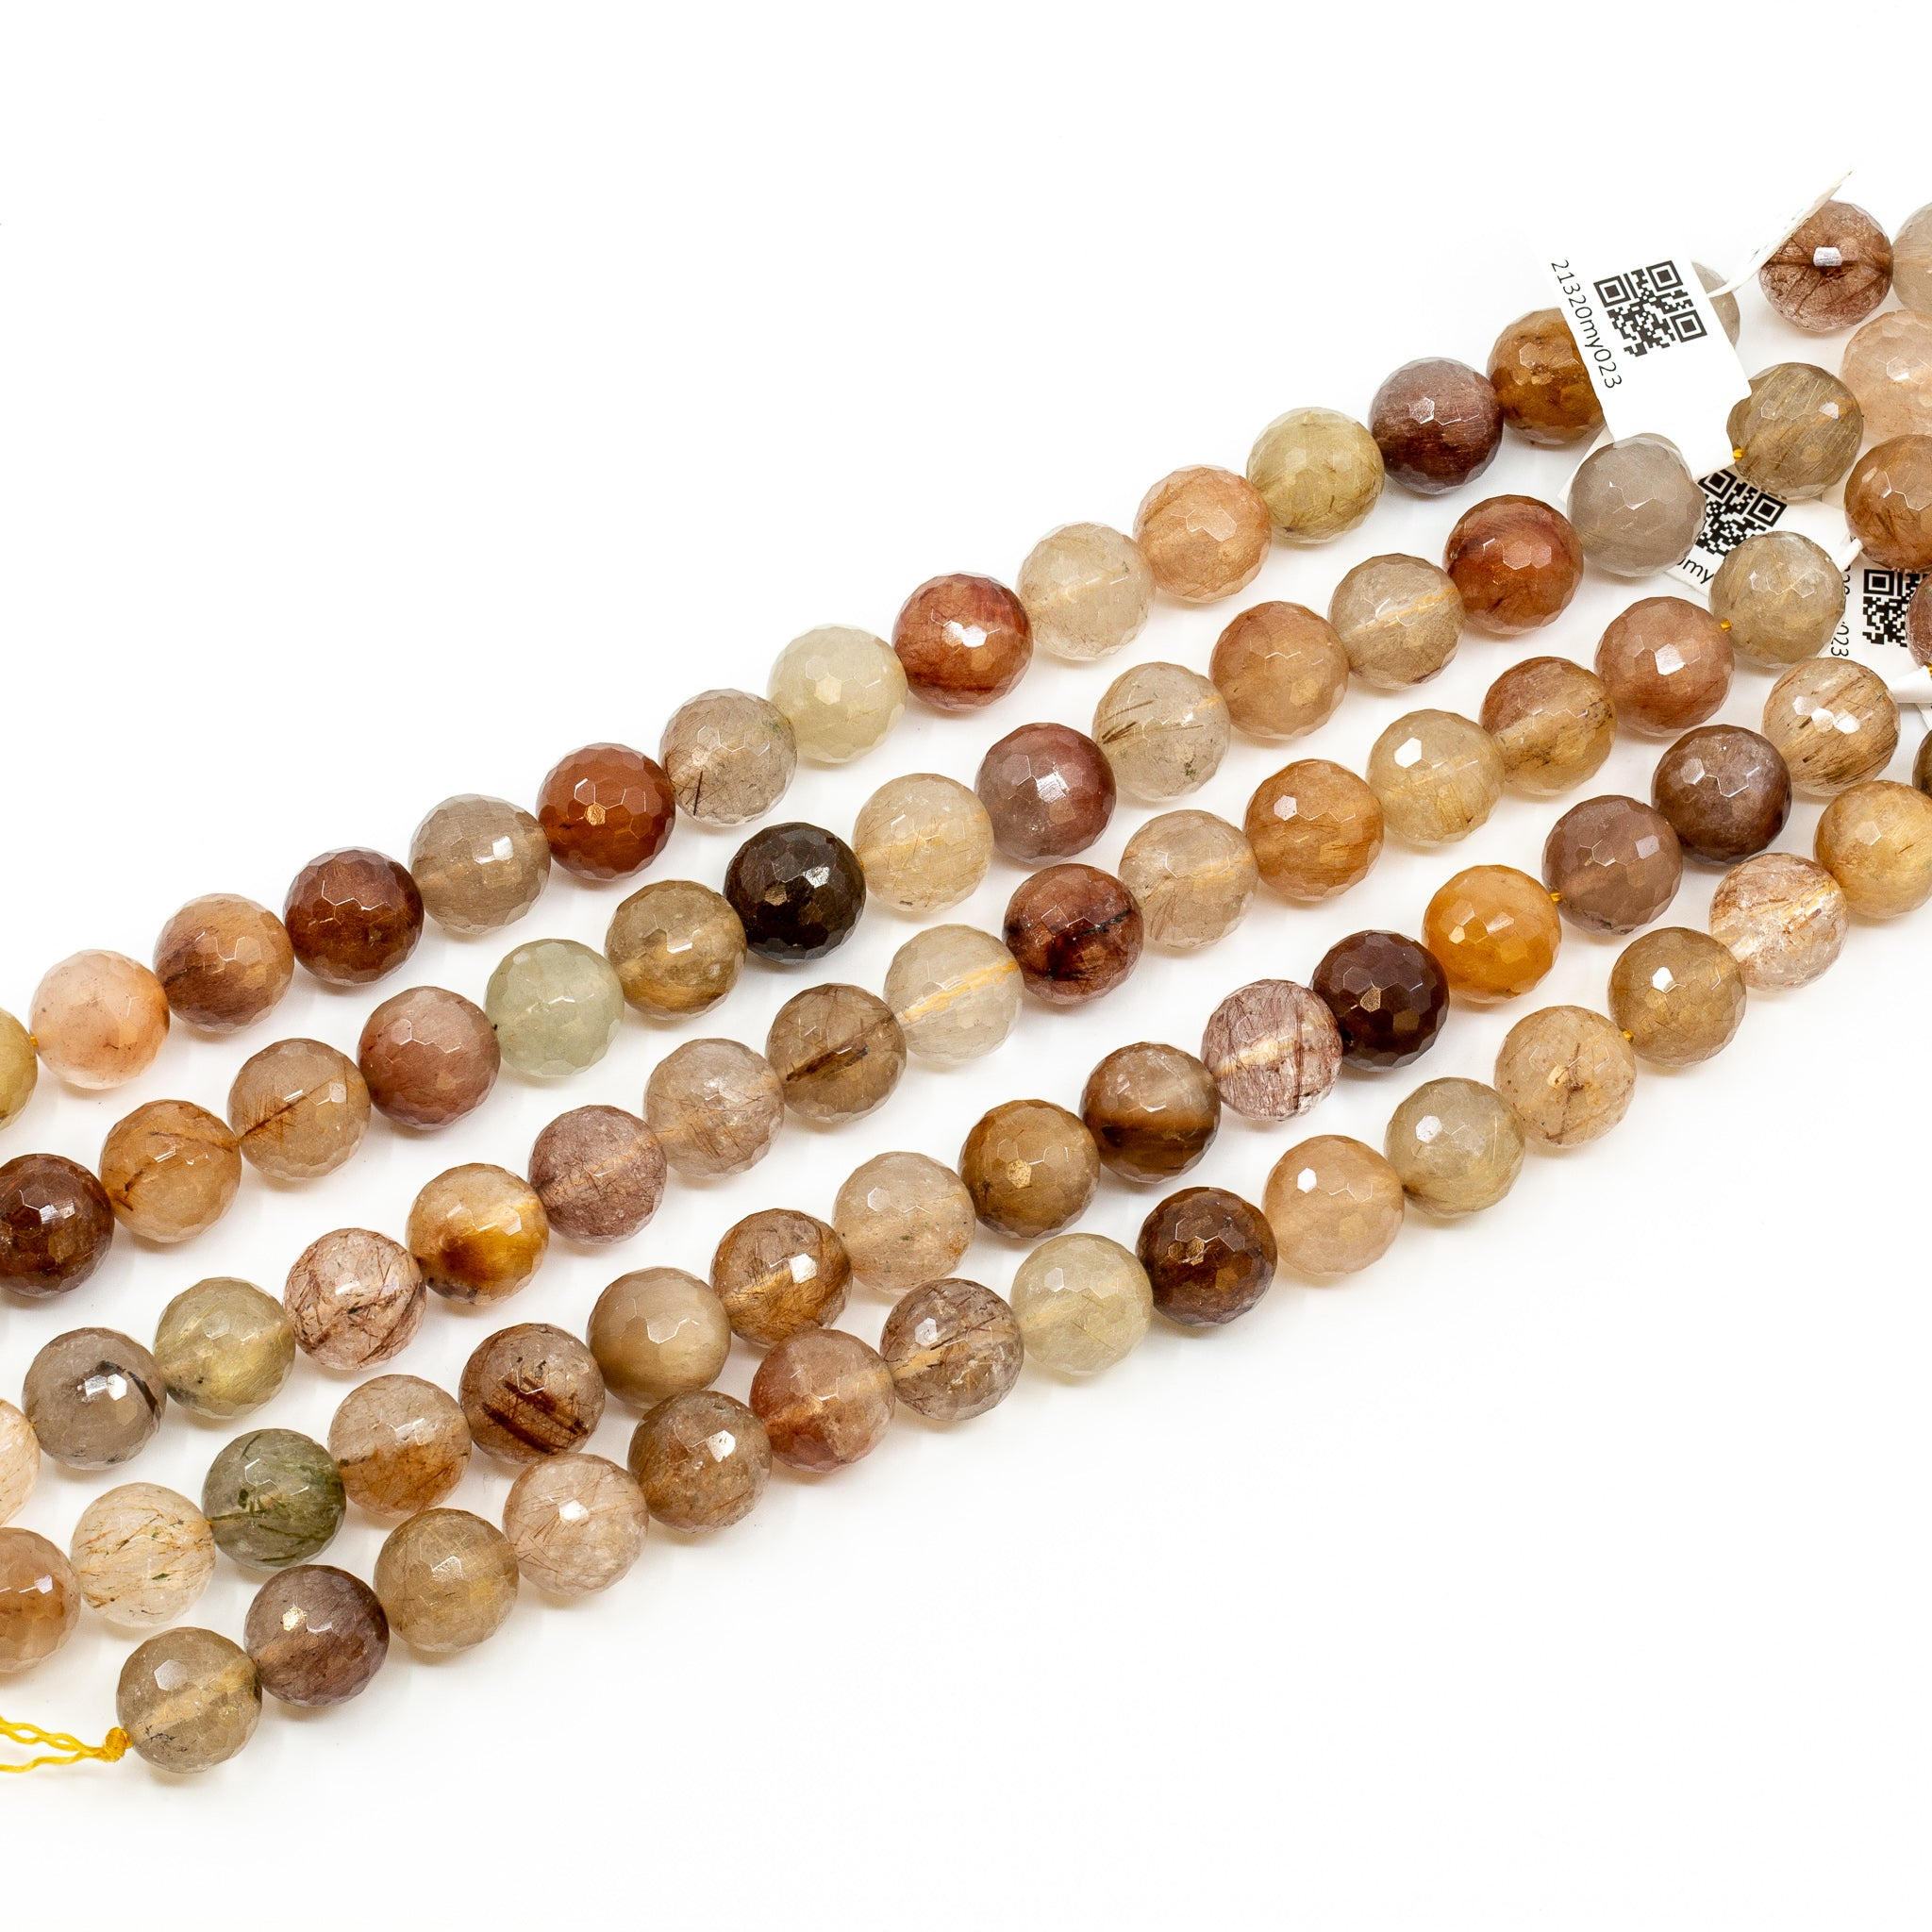 Assorted Rutilated Quartz Strand - 11mm Faceted Round